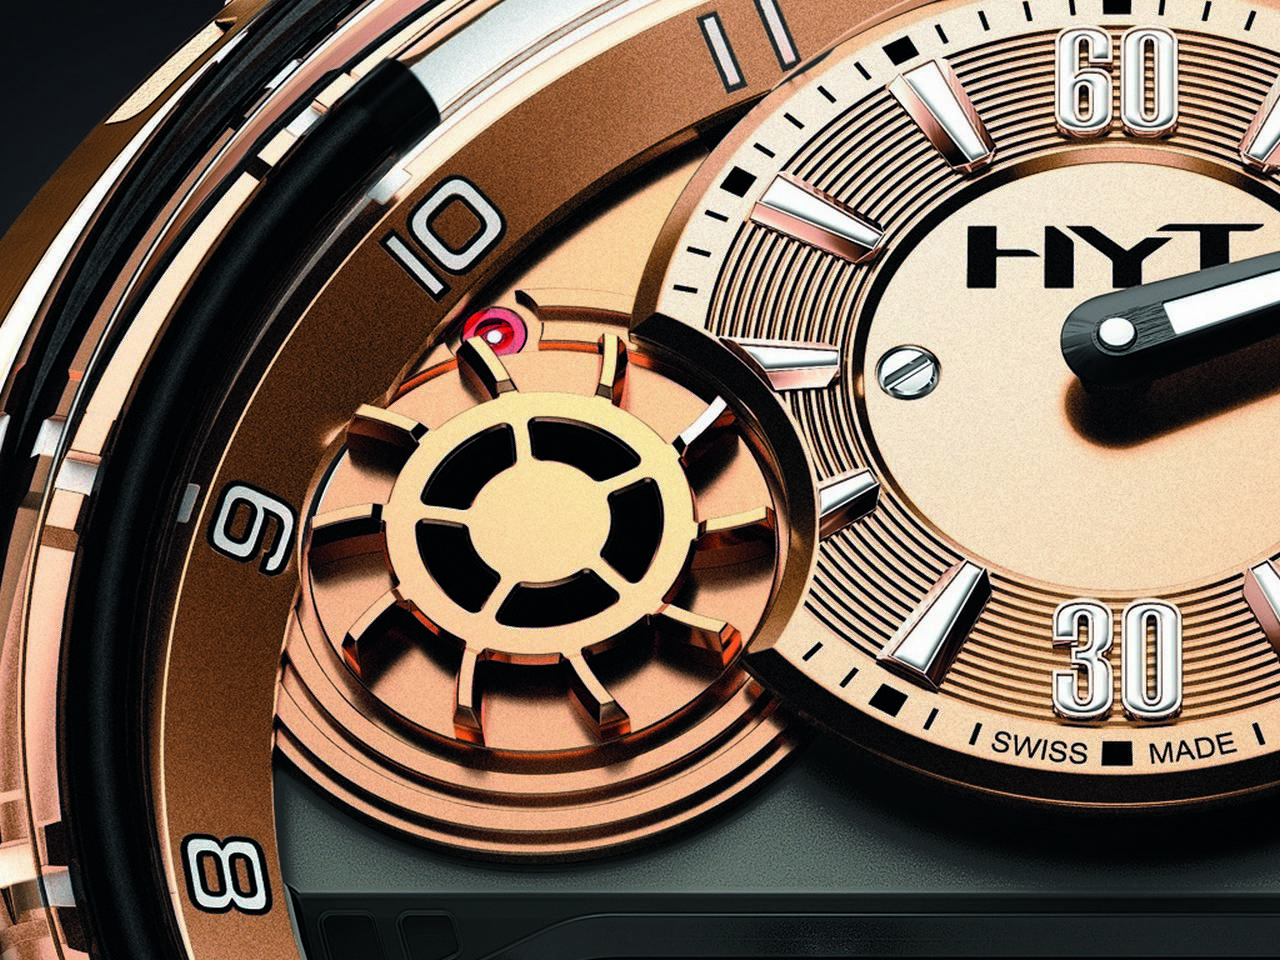 baselworld-2016-hyt-h1-full-gold_0-1003